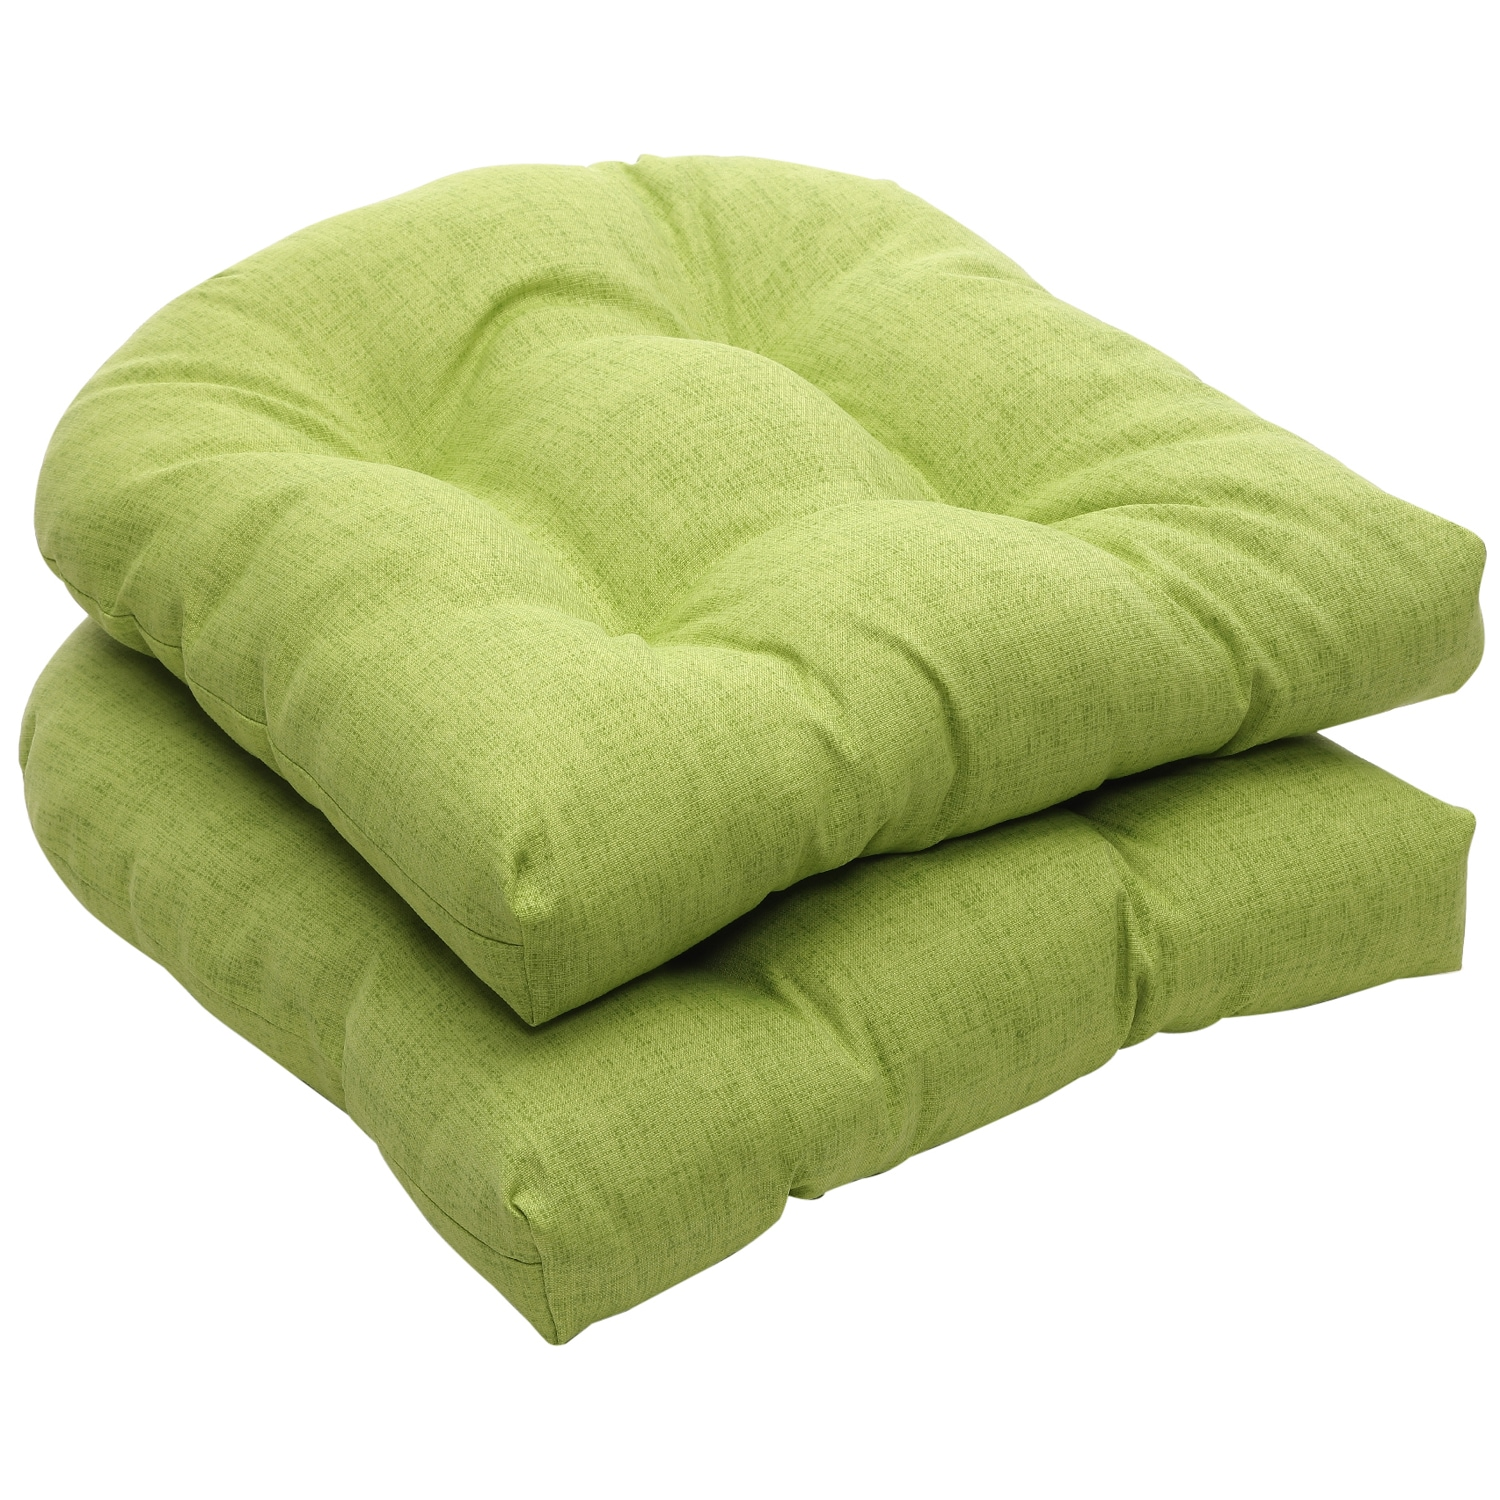 Outdoor Green Textured Solid Wicker Seat Cushions Set of 2 Free Shipping Orders Over $45